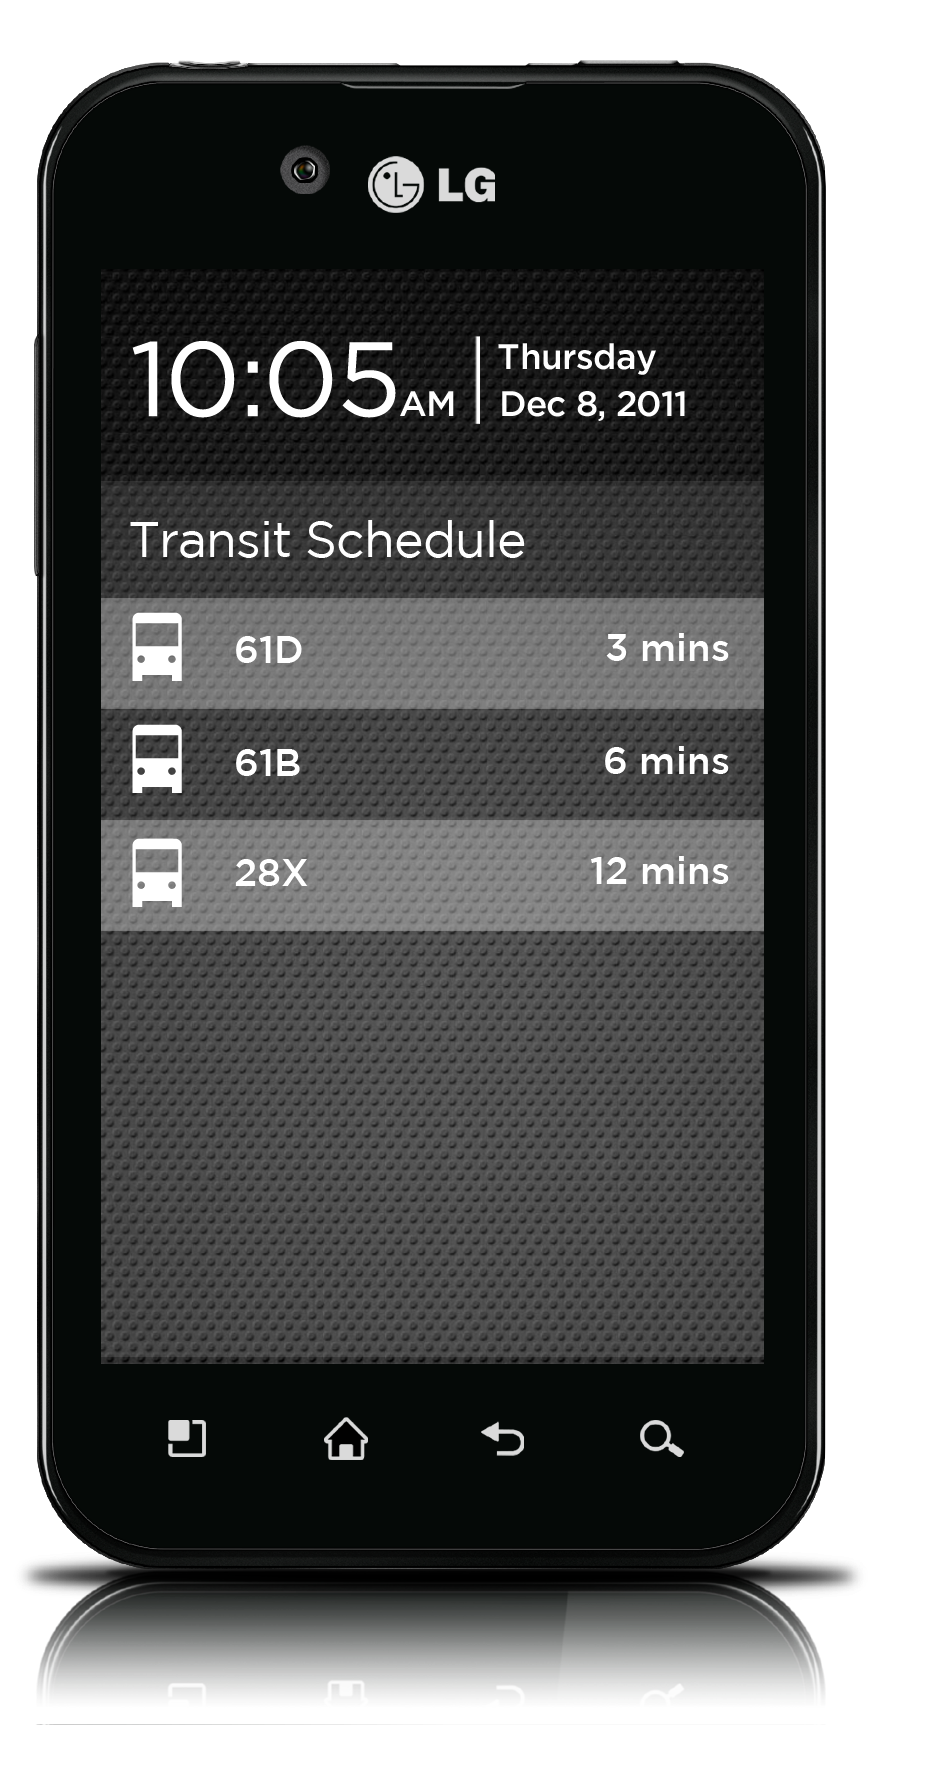 Upcoming public transit schedule is shown for the user's stop